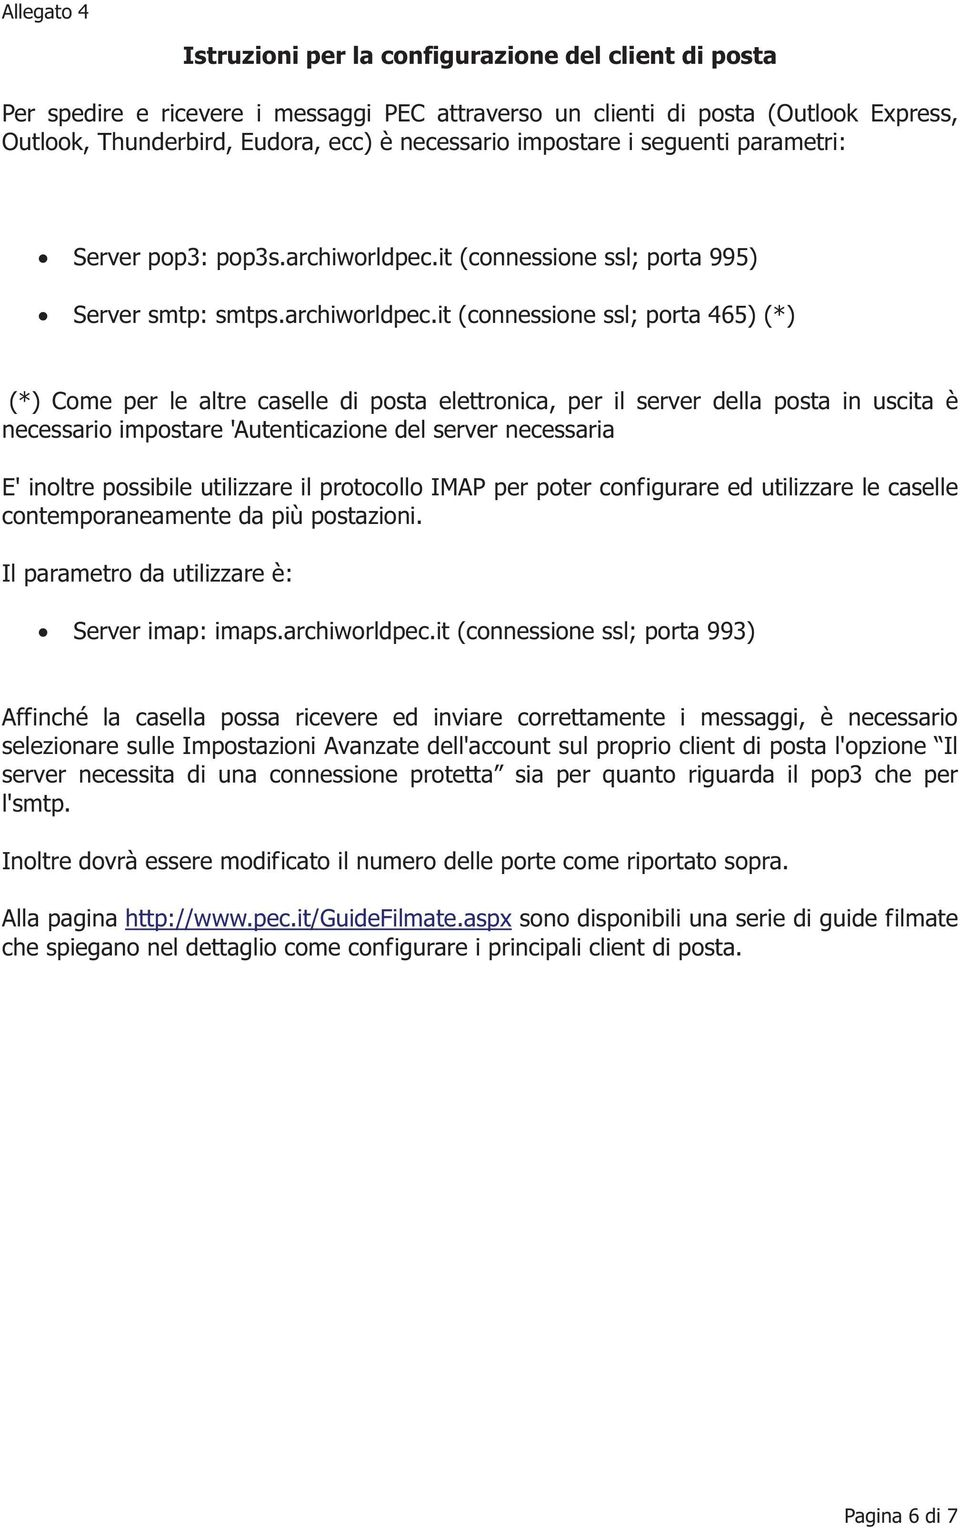 it (connessione ssl; porta 995) Server smtp: smtps.archiworldpec.